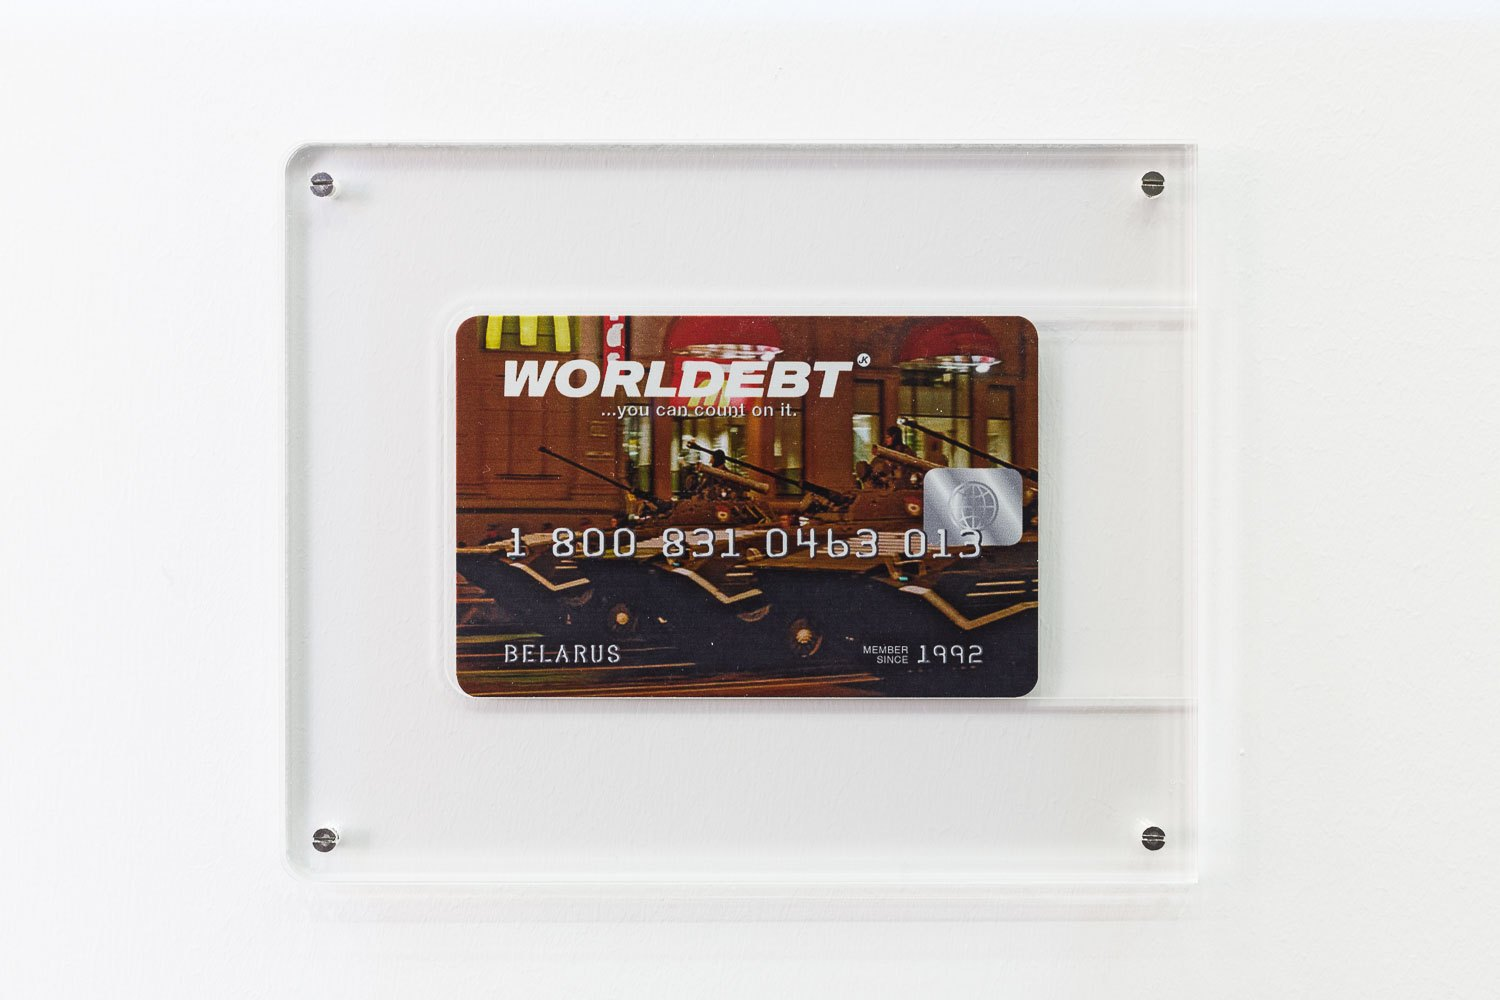 John Knight Worldebt, 1994/2015 Lithography on aluminum, 165 parts, 8 × 13 cm each (without frame)